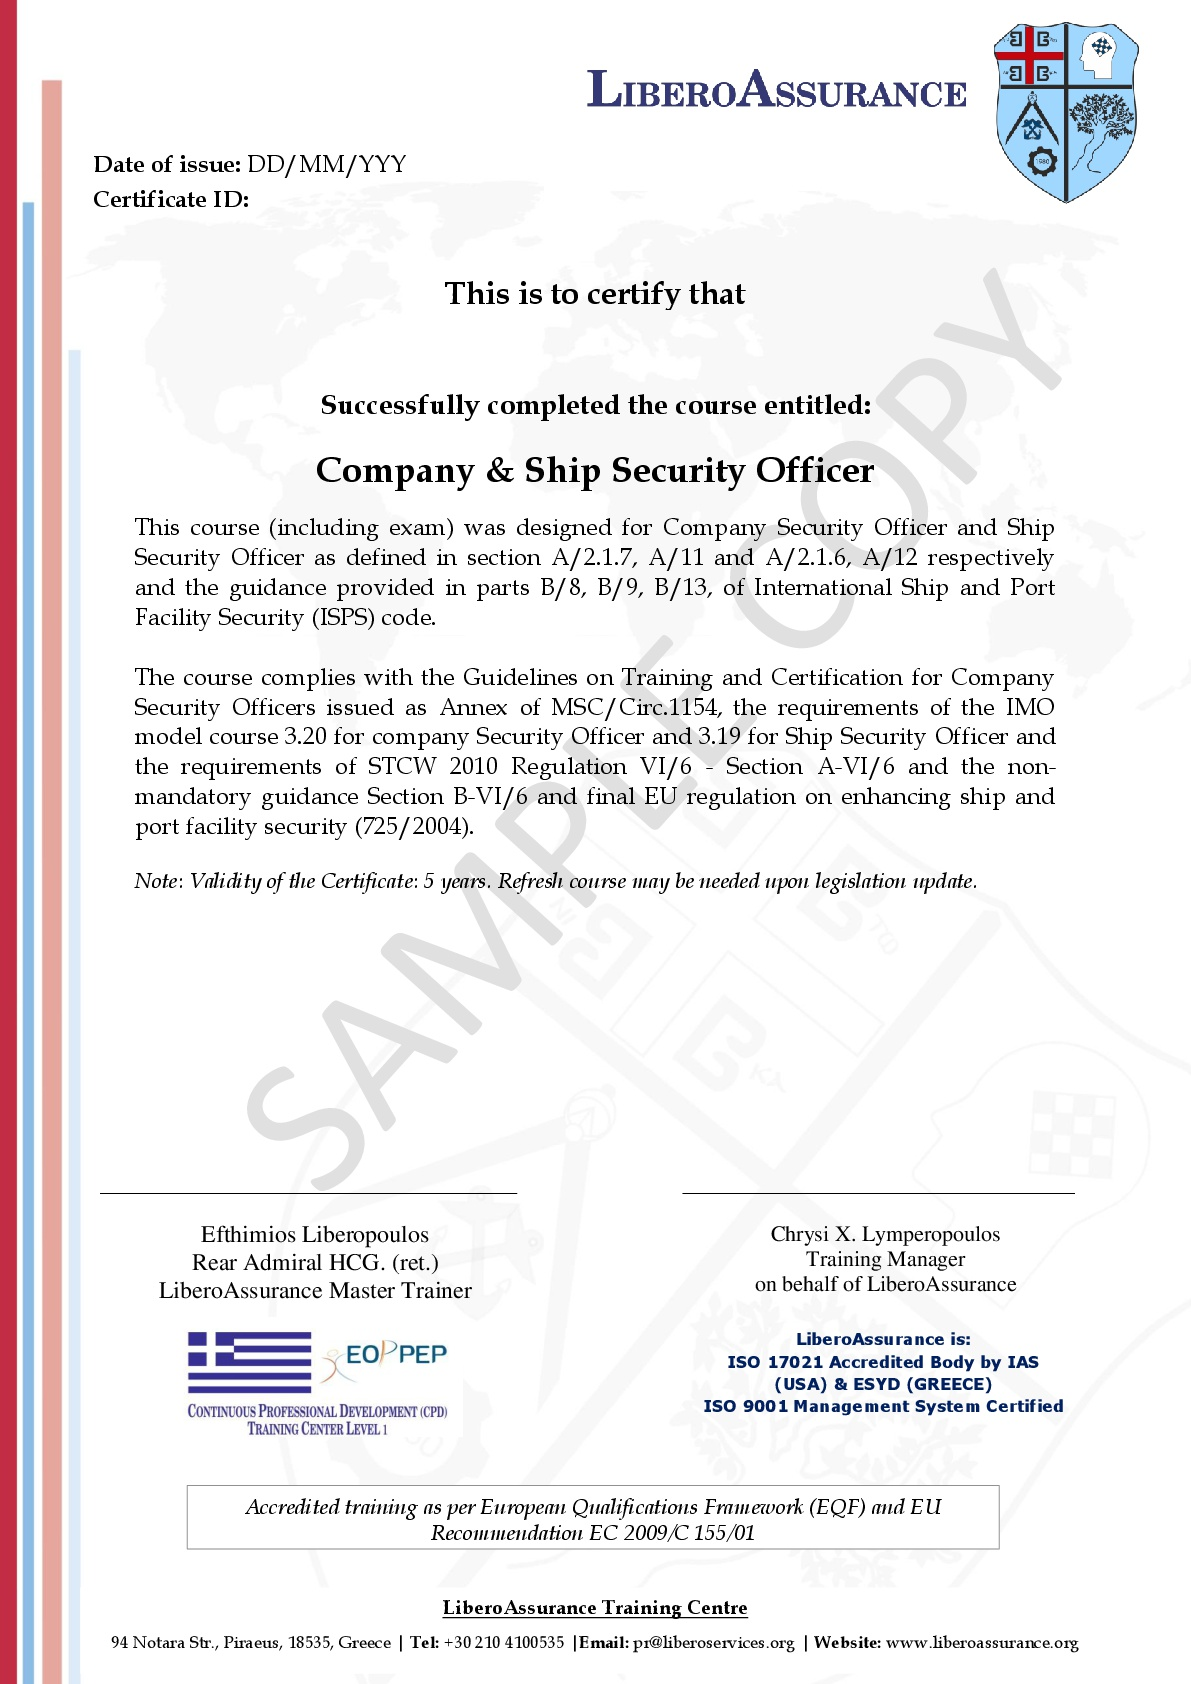 International Ship and Port Facility Security (ISPS) Code for